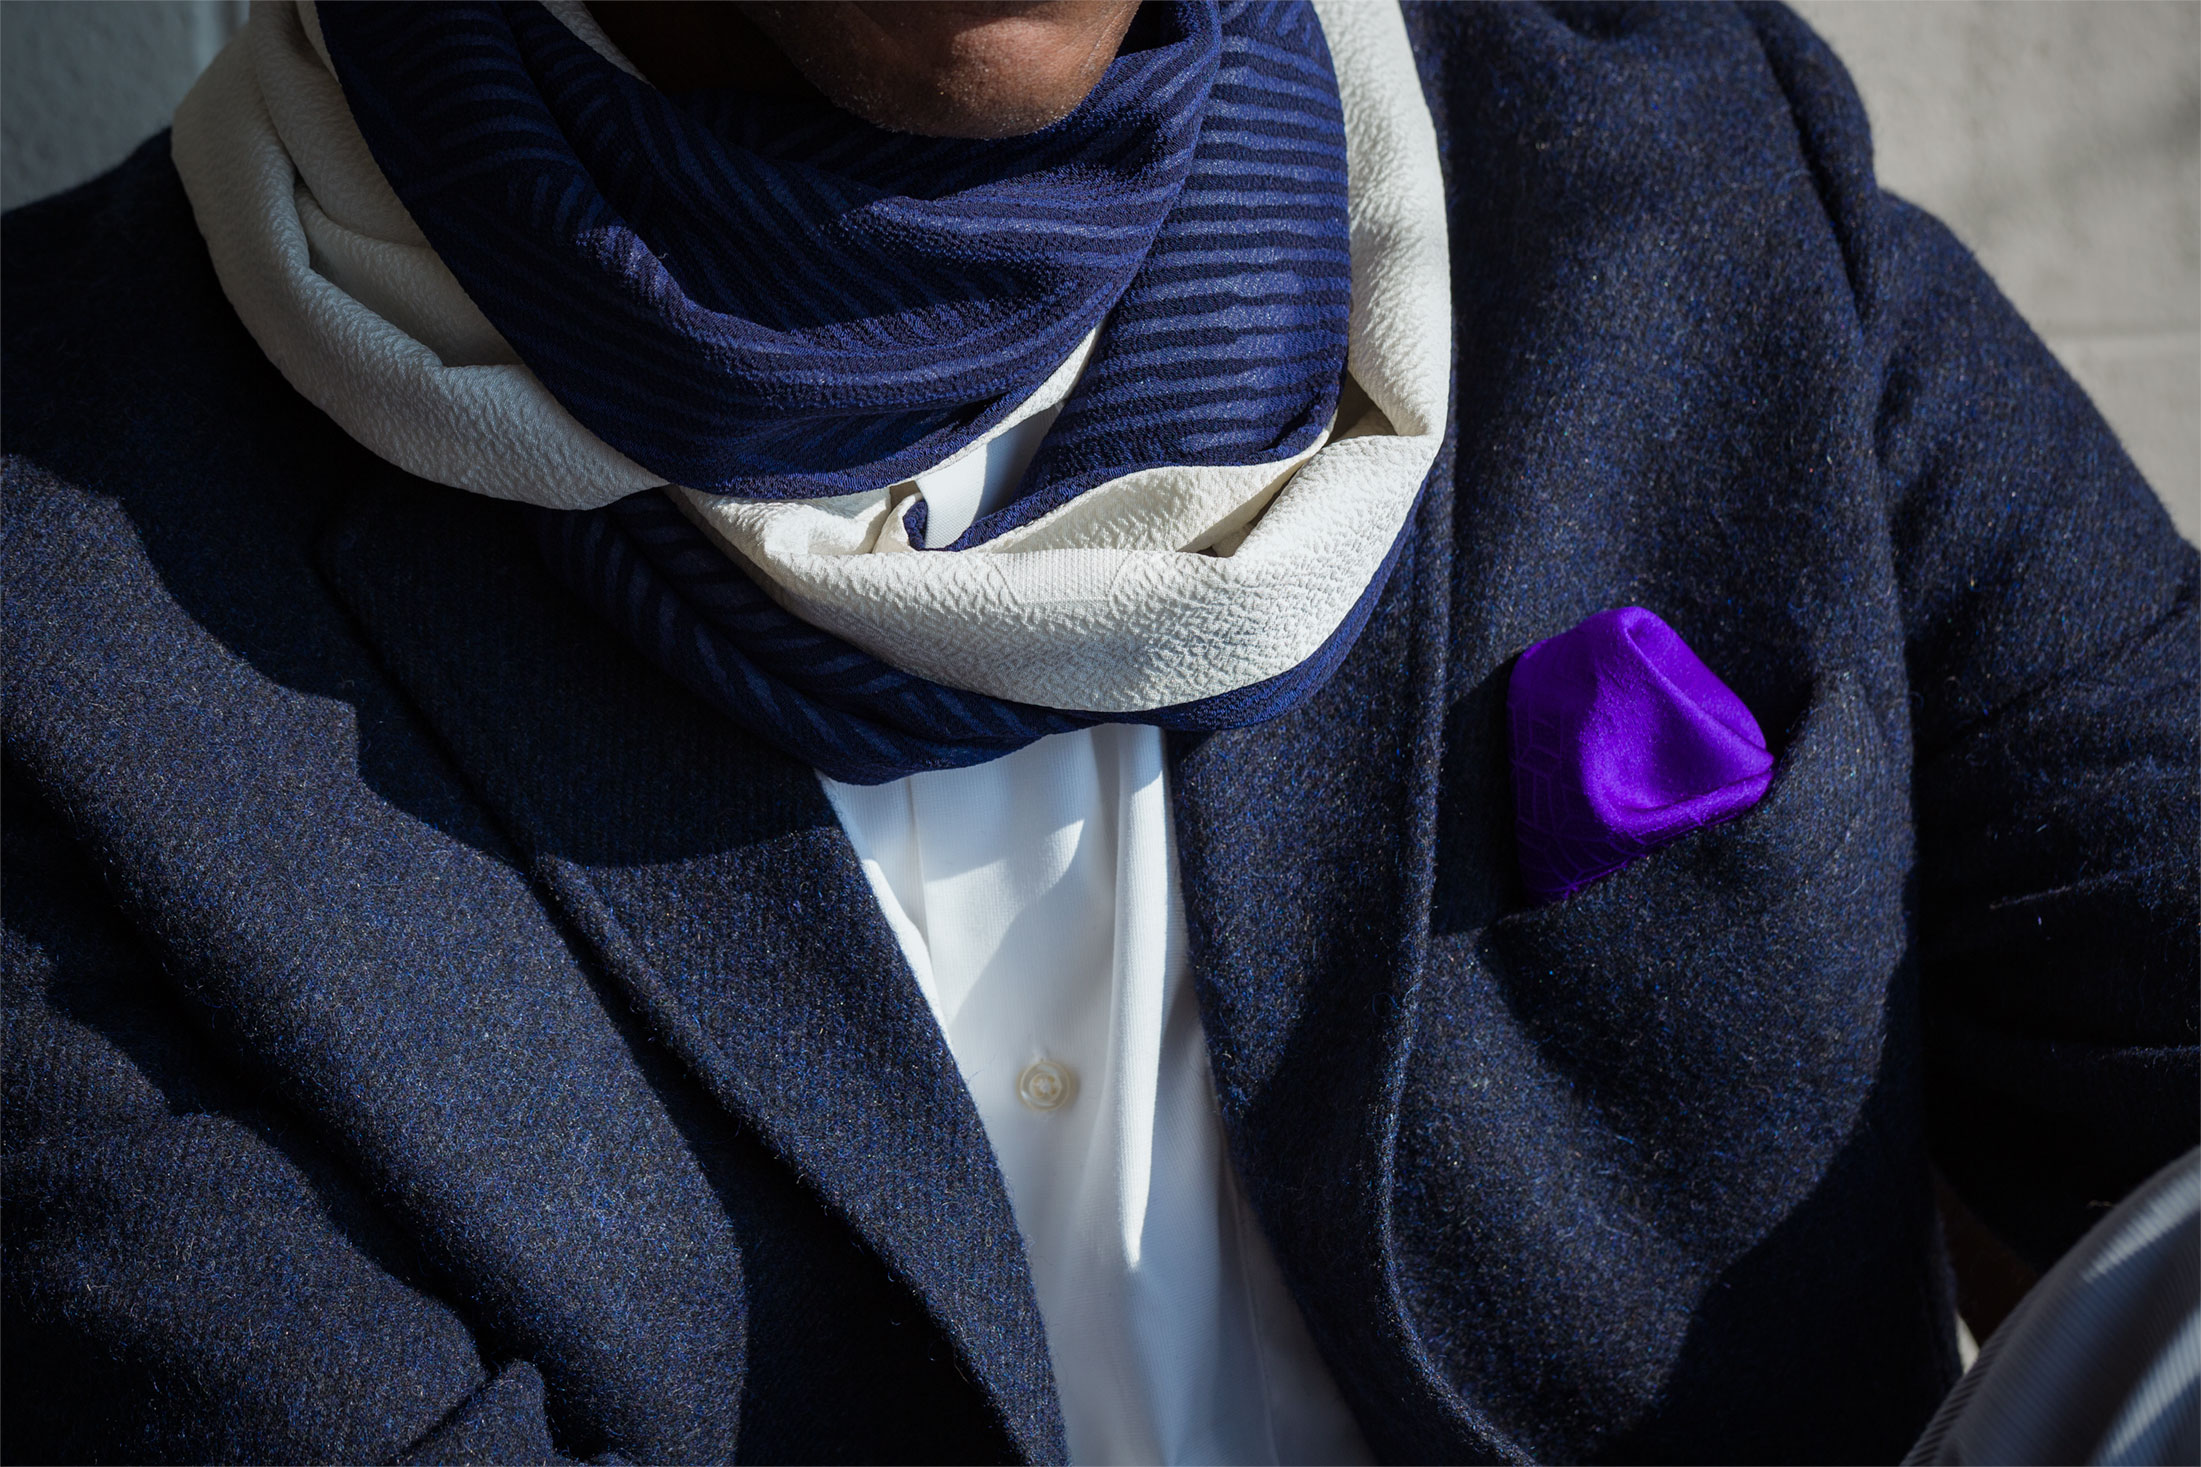 Nishijin Wave Infinity Scarf and Royal Purple Shippou Nami Pocket Square